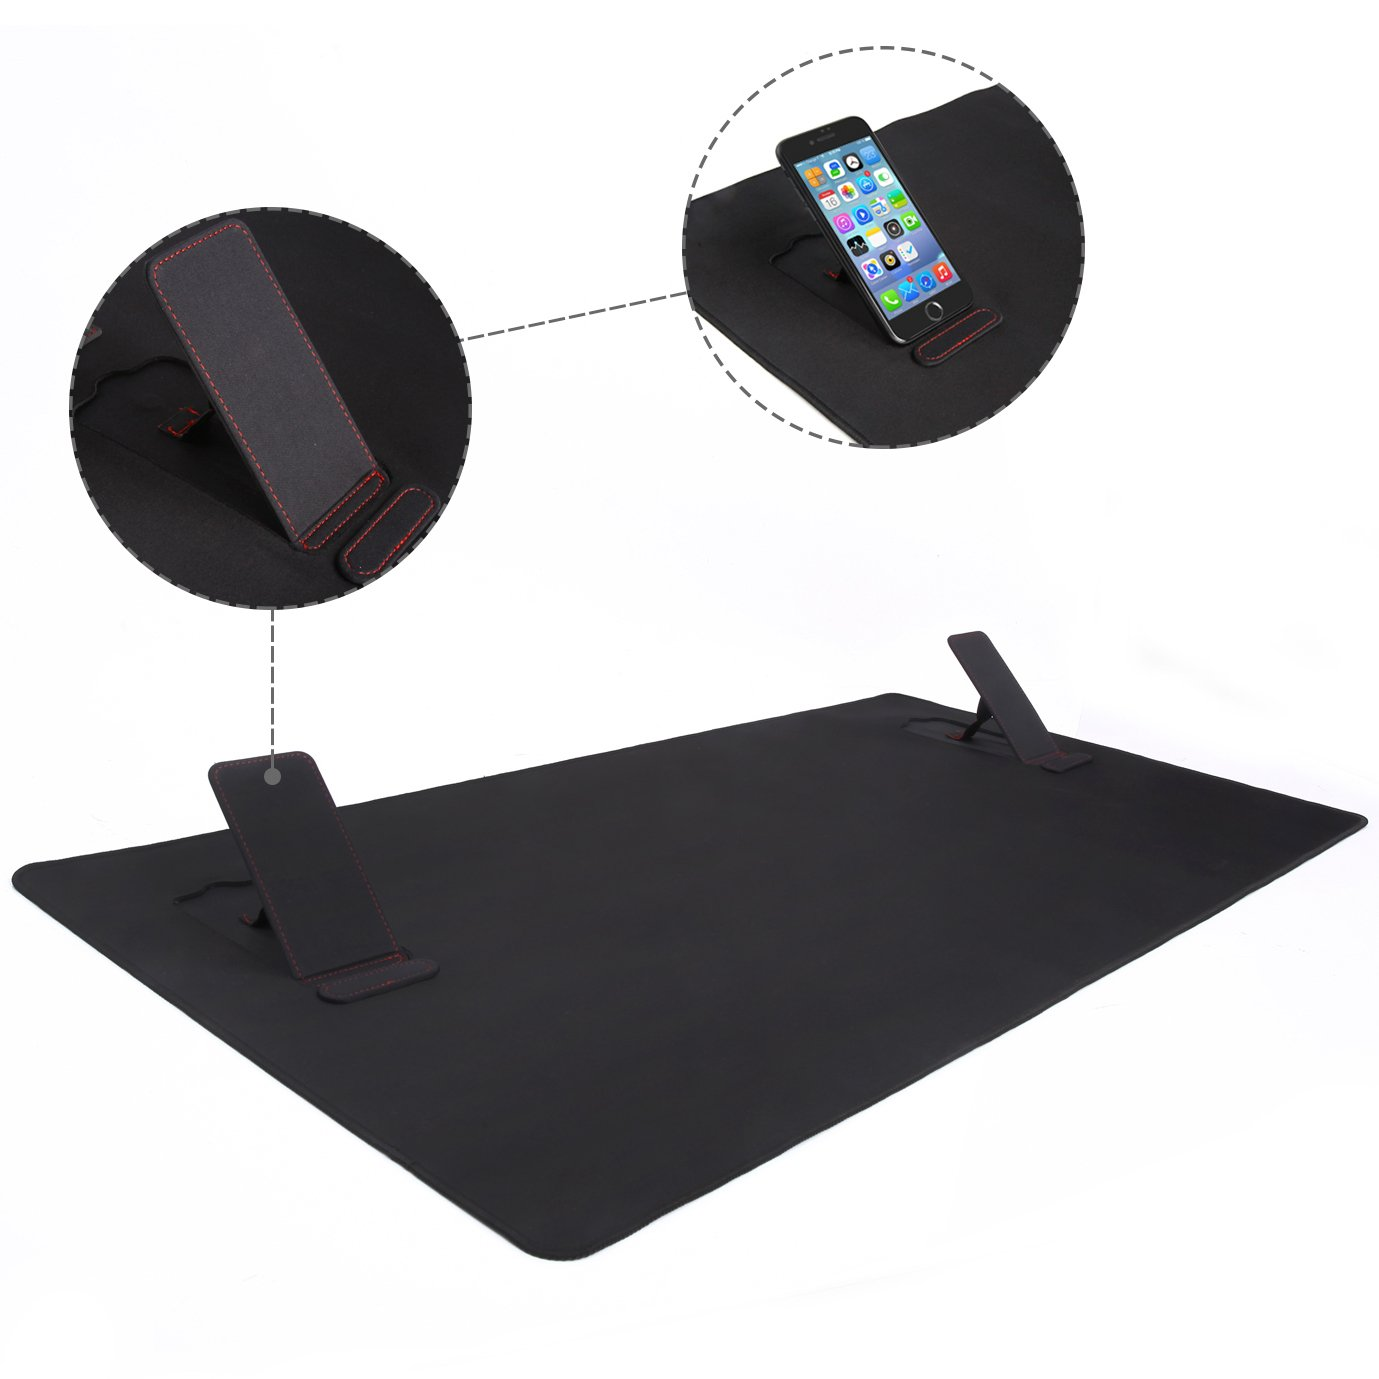 Large Extended Gaming Mouse Pad XXL, Vogek Thick Large 34''x23'' Computer Keyboard Mouse Mat Waterproof Desk Pad with 2 Kick Stands for Smart Phones Black by Vogek (Image #3)